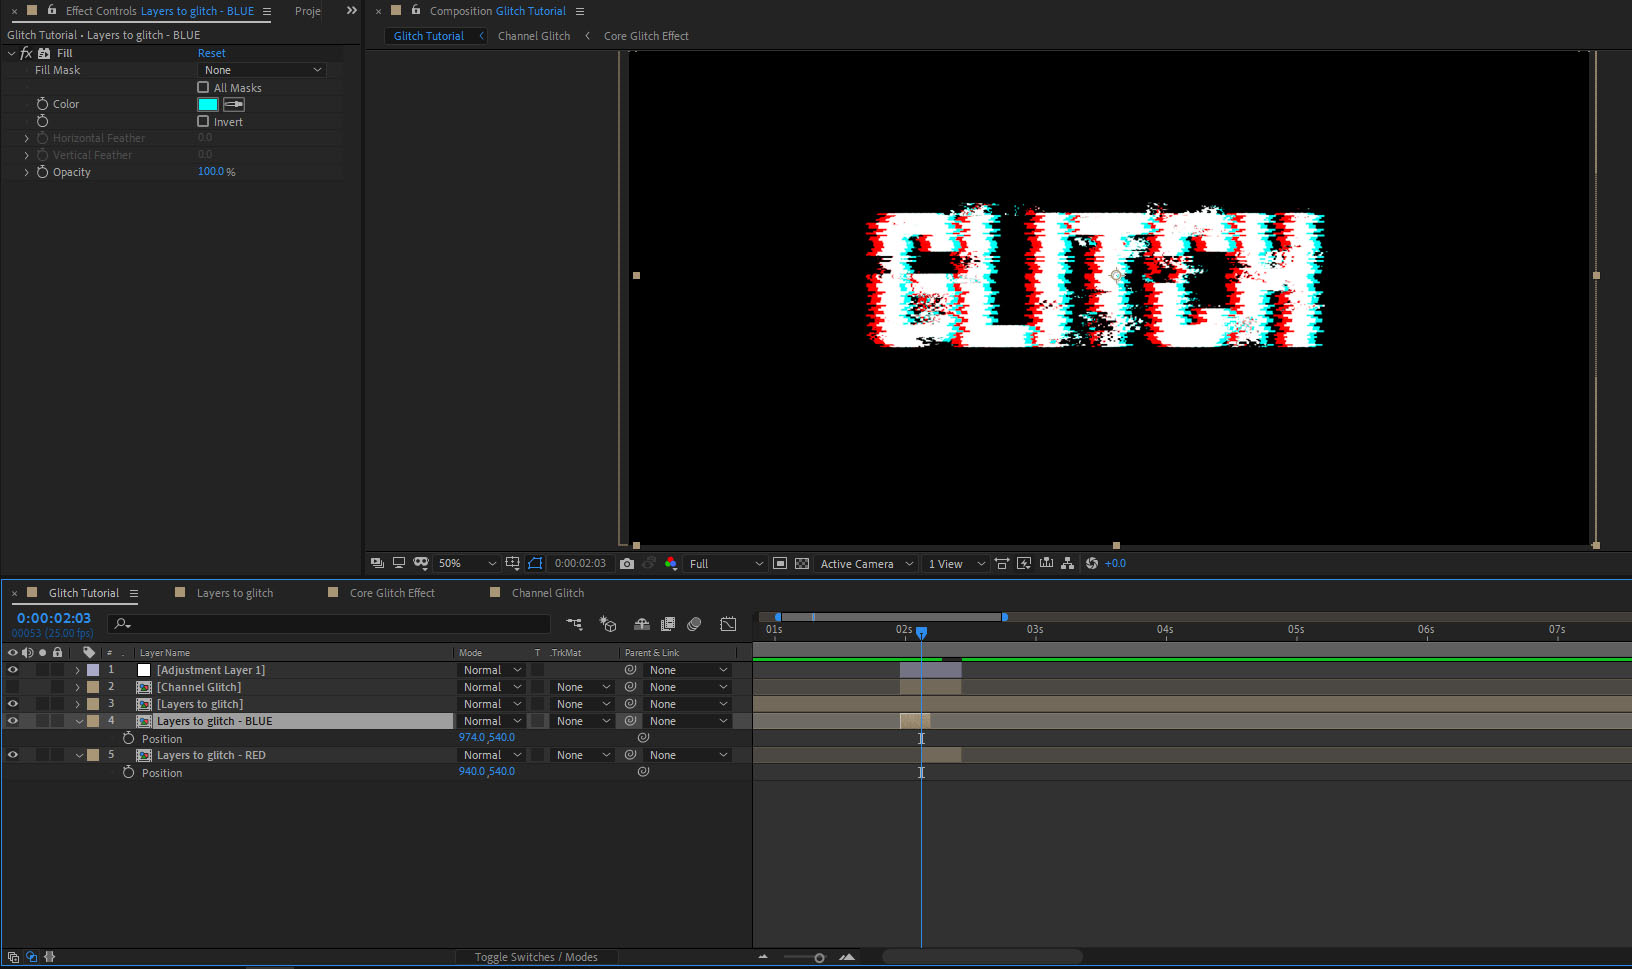 How to create a glitch effect in After Effects